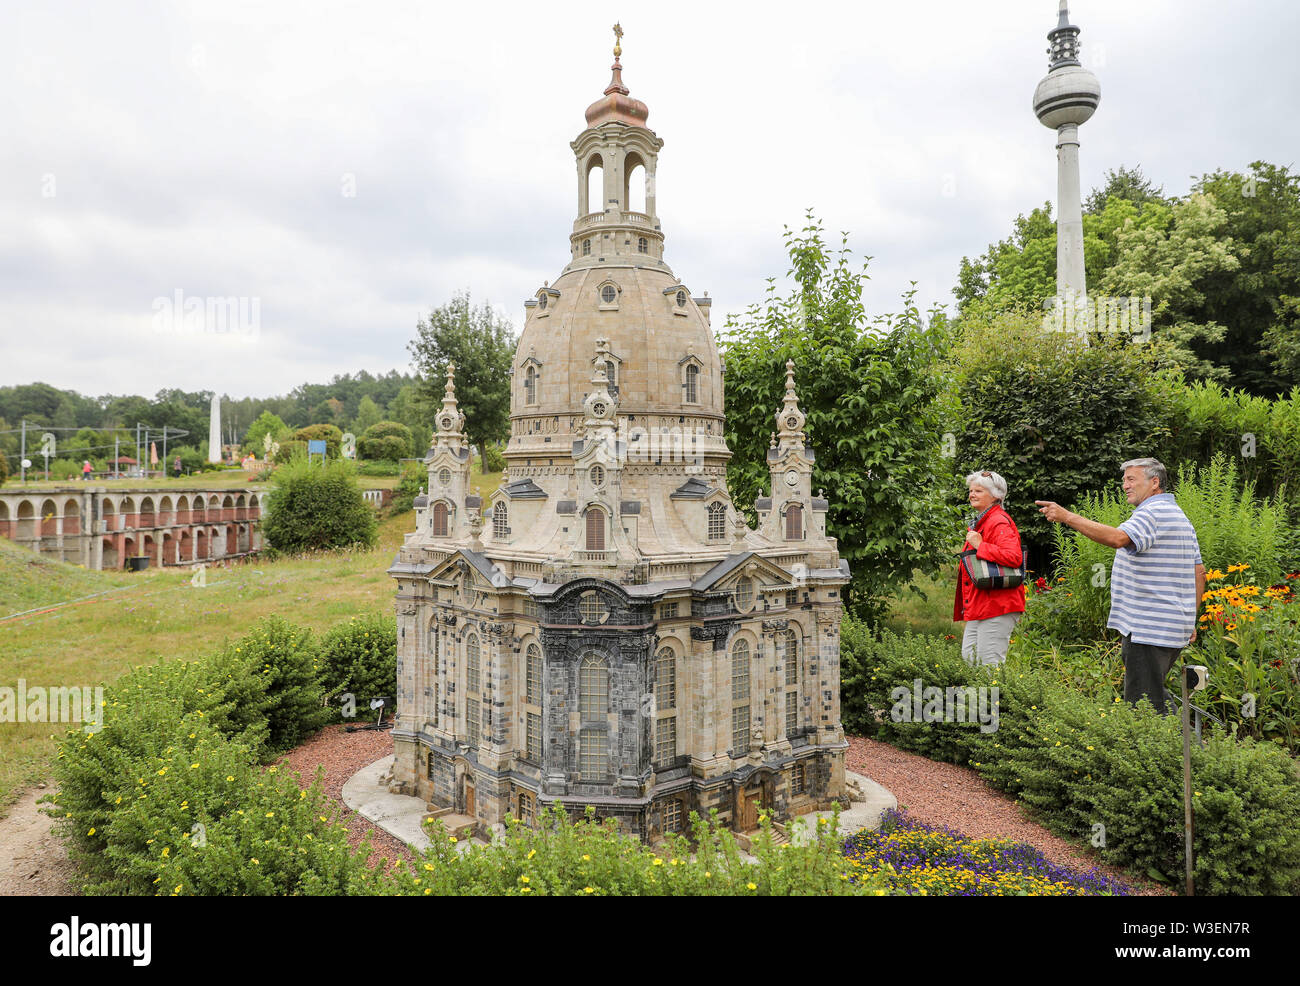 Lichtenstein, Germany. 15th July, 2019. Two visitors look at the model of the Dresden Frauenkirche in the Miniwelt Lichtenstein/Saxony. Visitors can visit the Eiffel Tower and the Taj Mahal on foot. Opened on 15 July 1999, the miniature park is now 20 years old. In the meantime, the initial 60 buildings have grown to more than 100. A good 1.9 million people have already visited the miniworld. Credit: Jan Woitas/dpa-Zentralbild/dpa/Alamy Live News - Stock Image